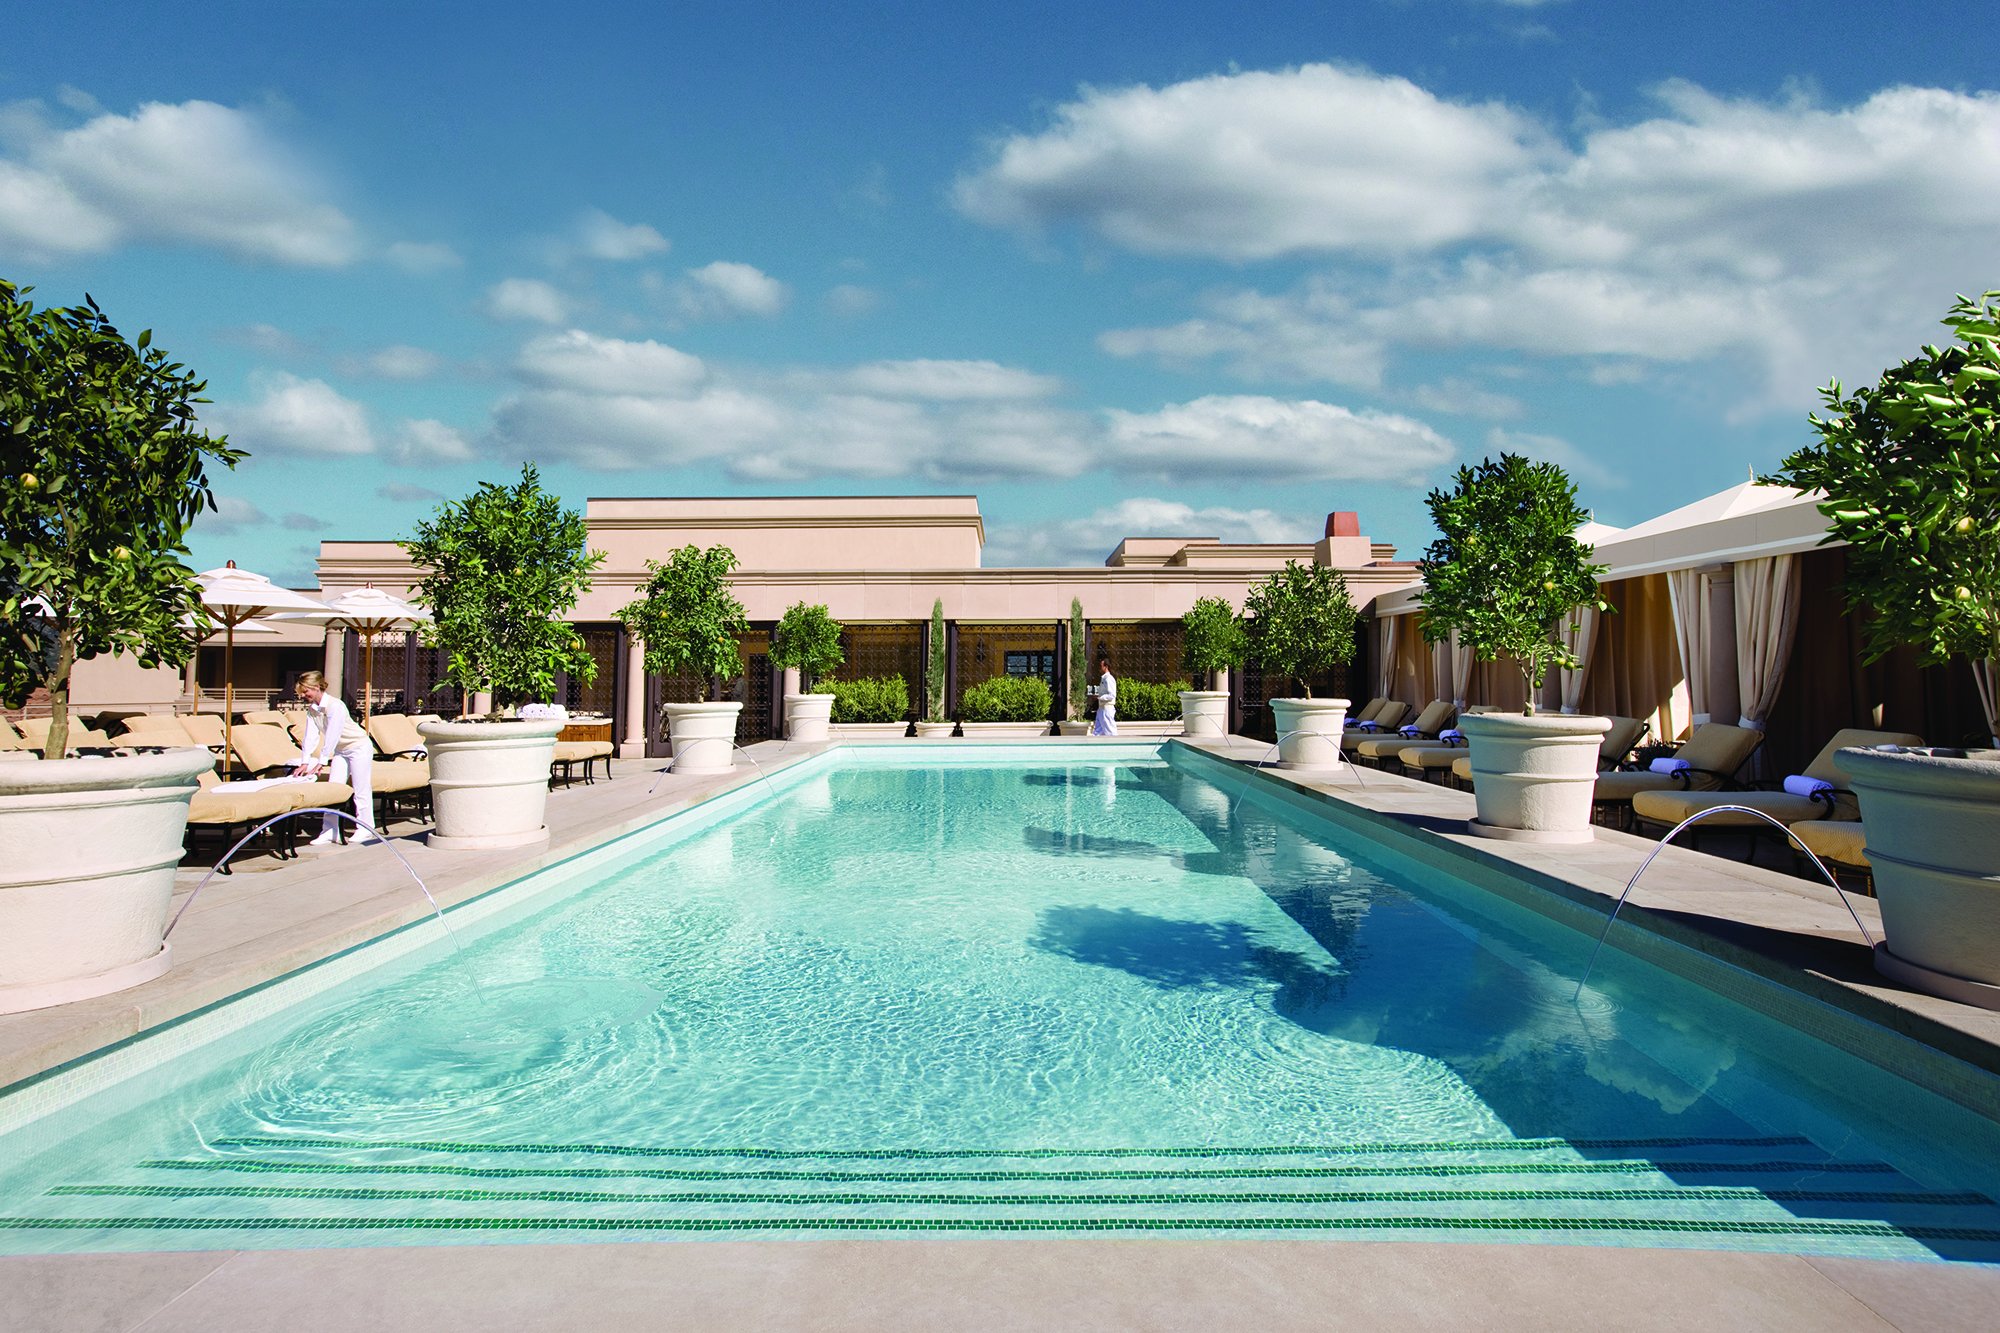 MBH - Architectural - The Rooftop Pool 300DPI